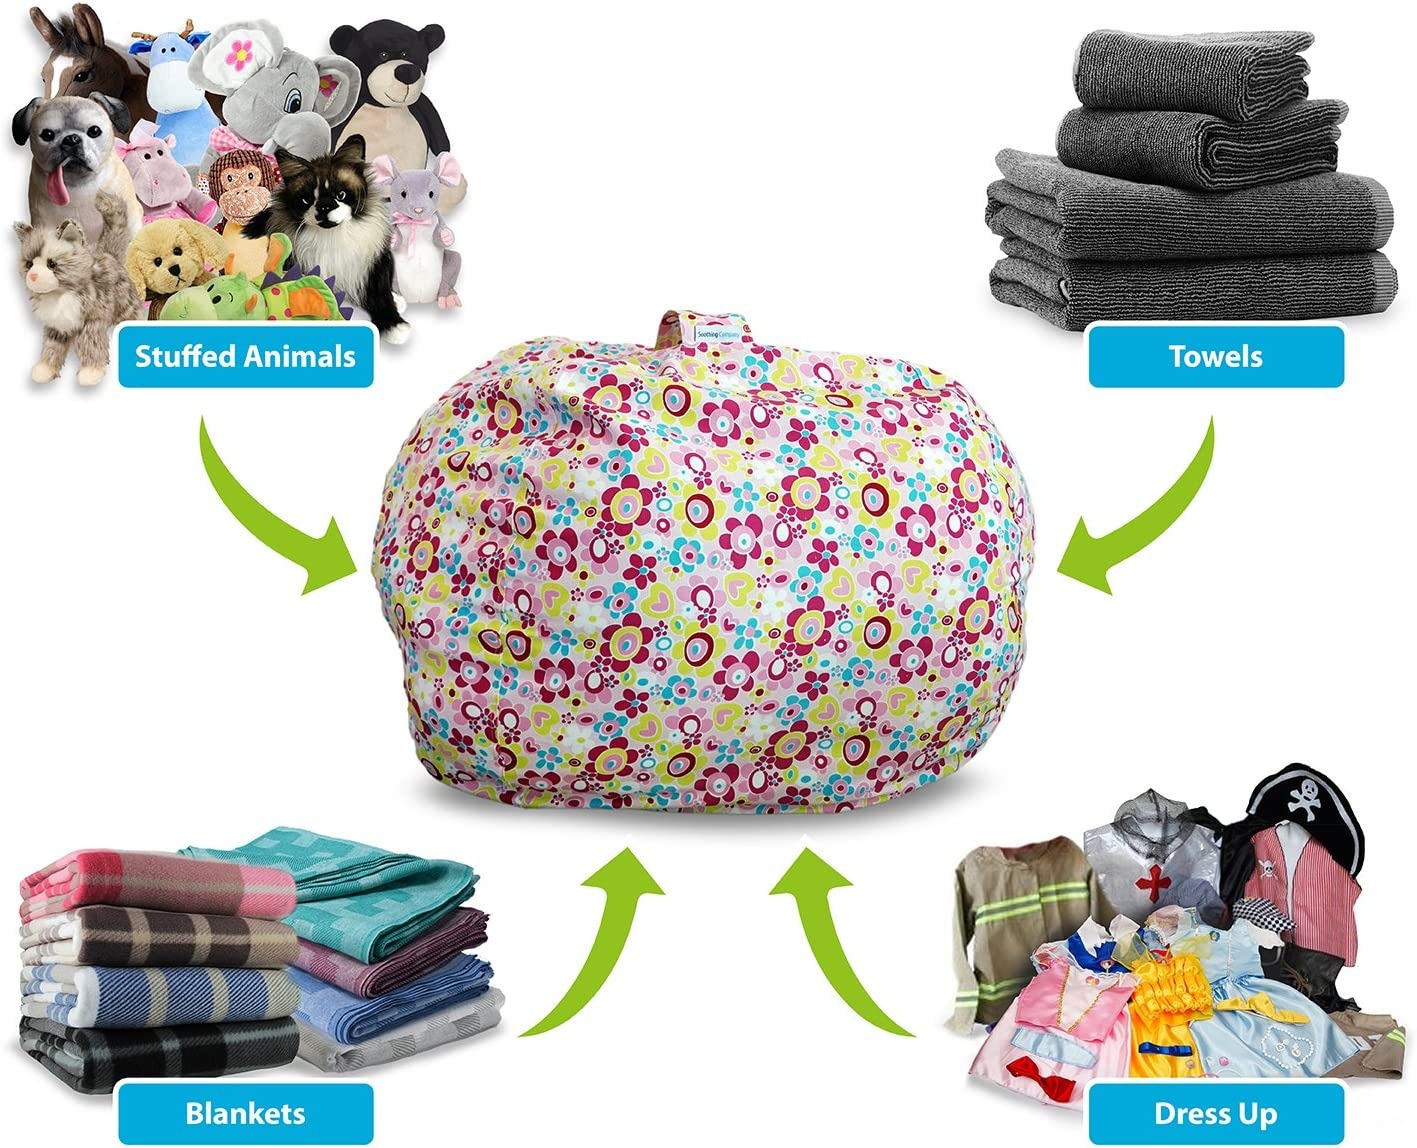 Soothing Company Stuffed Animal Bean Bag Chair for Kids Premium Cotton Canvas Extra Large Empty Beanbag 27, Grey Flowers Kid Toy Storage Covers for Your Childs Stuffed Animals and Blankets